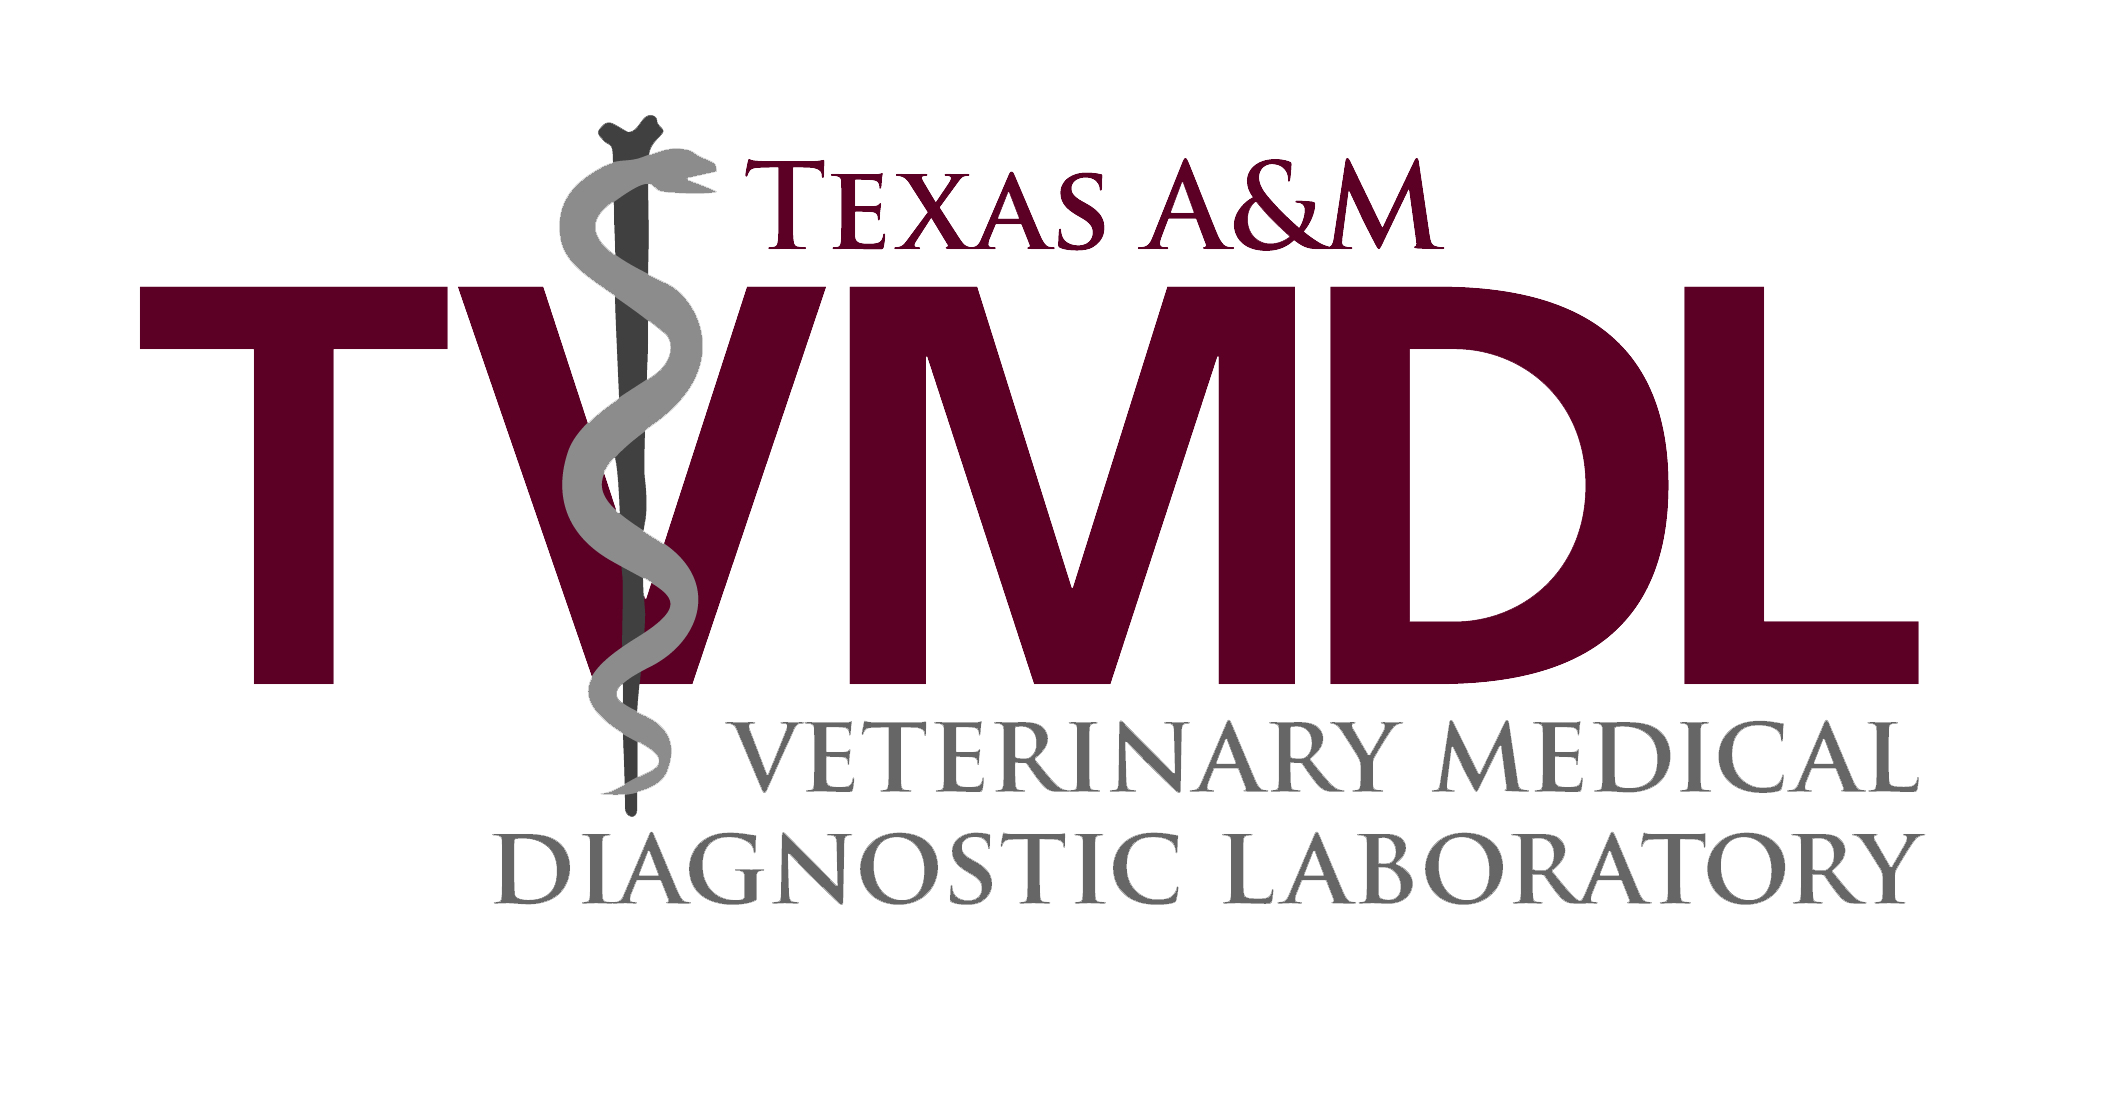 Dr. Guy Sheppard Joins TVMDL As Veterinary Diagnostician